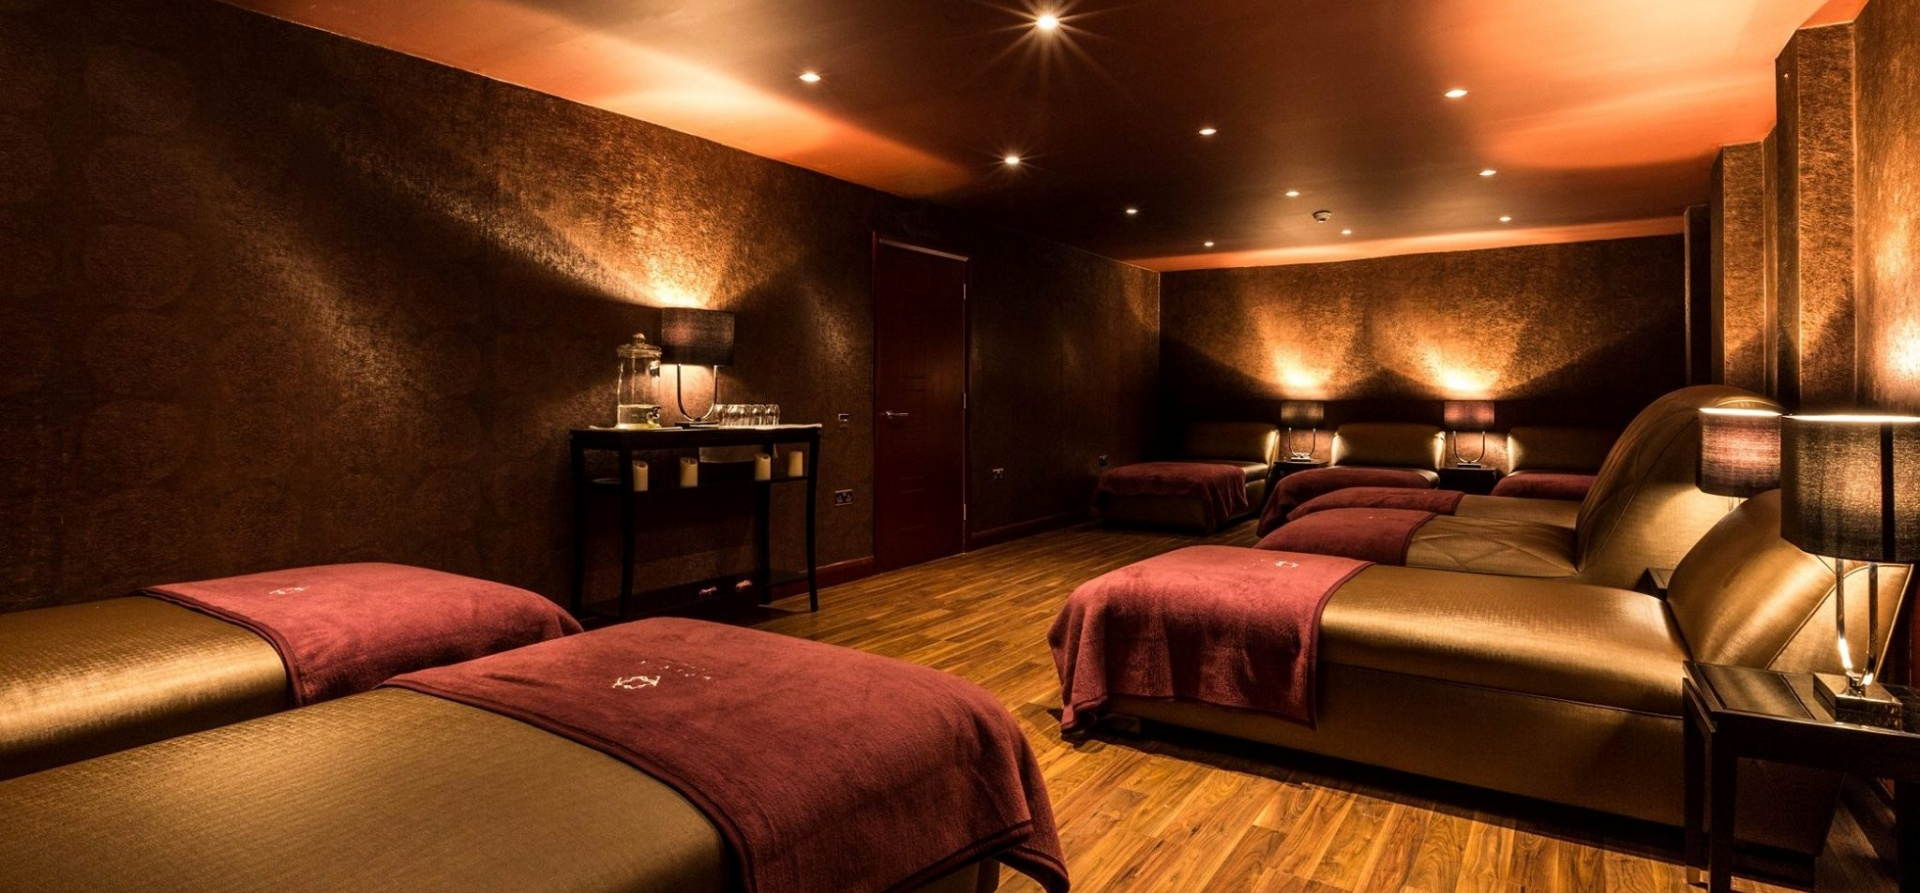 Indulging Full Day Deluxe Spa Experience in Glasgow-20